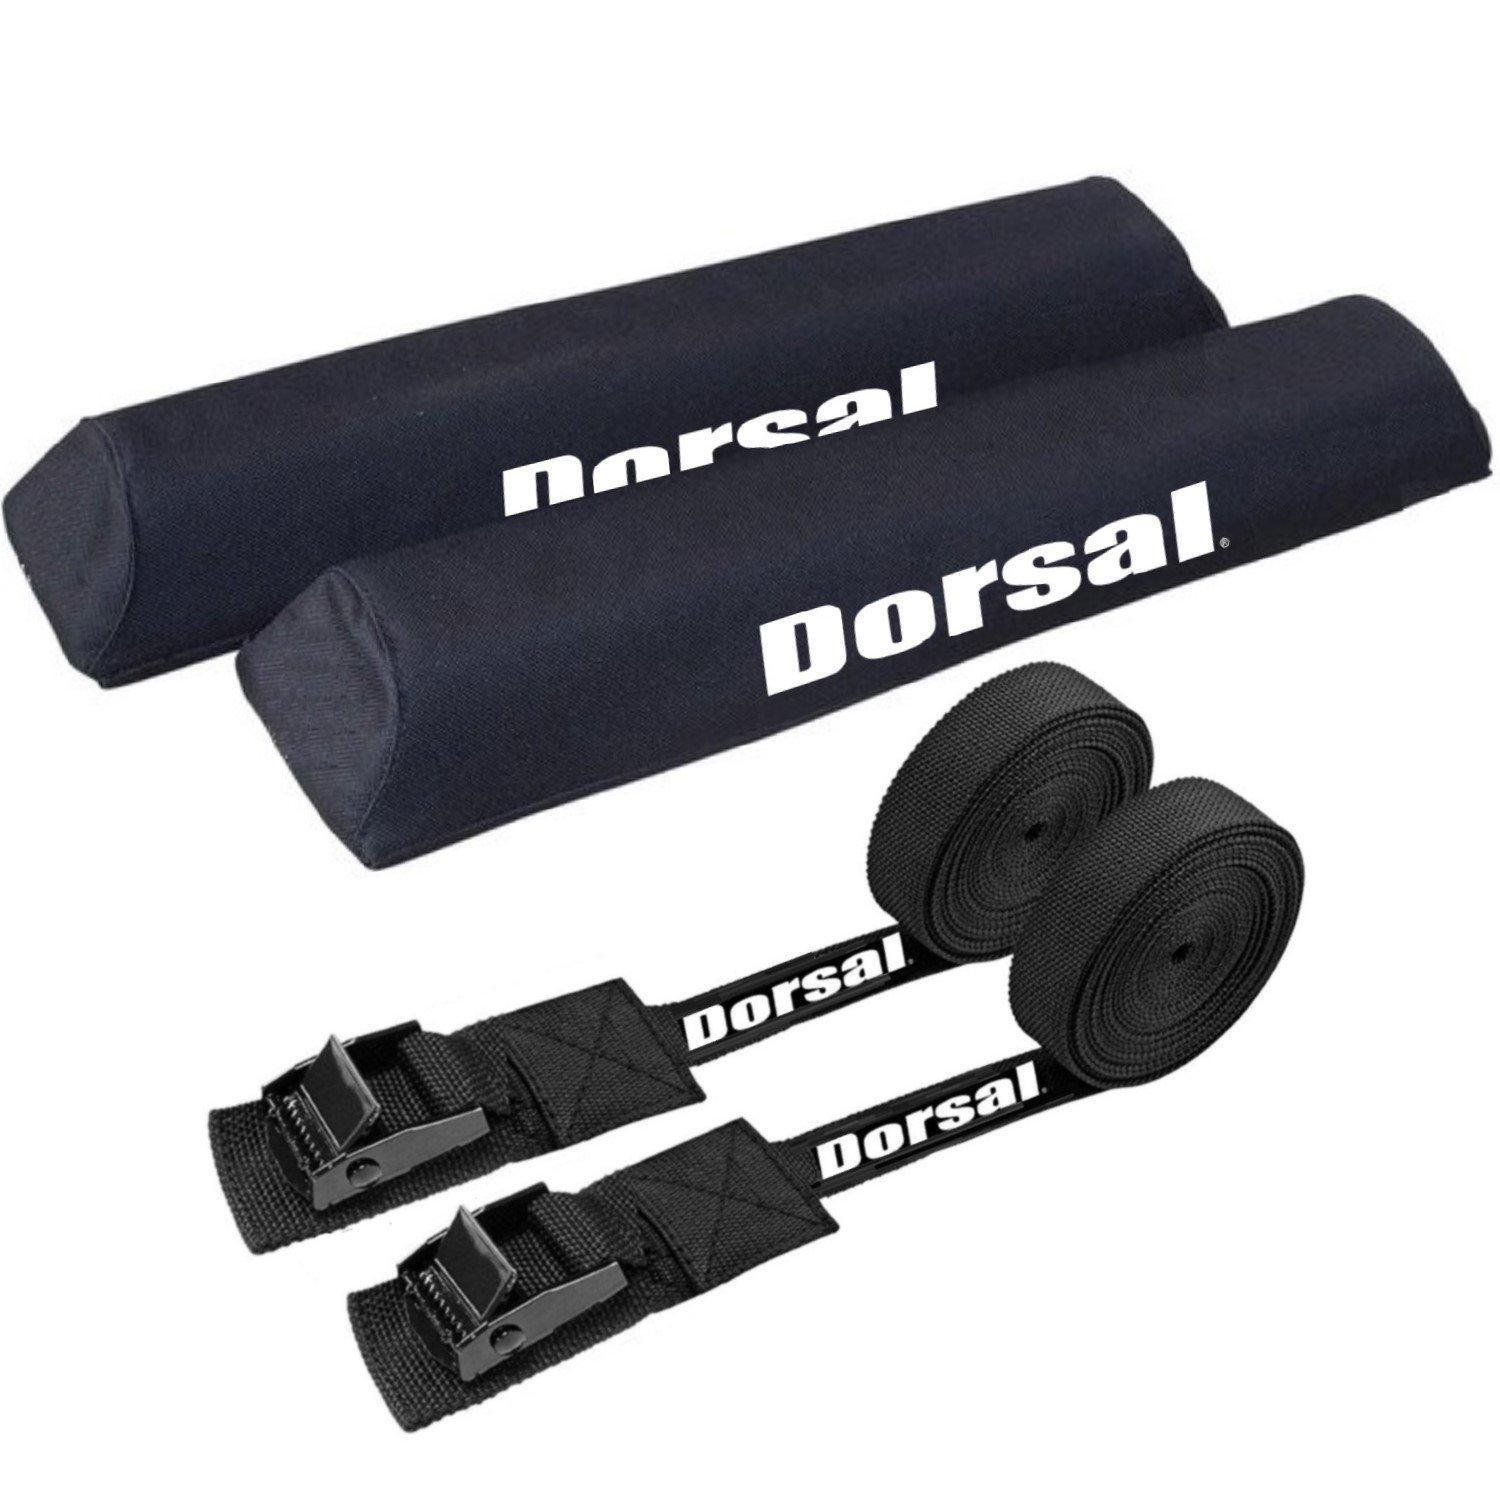 Dorsal Origin Surf Rack Pads and Straps - 19 Inch